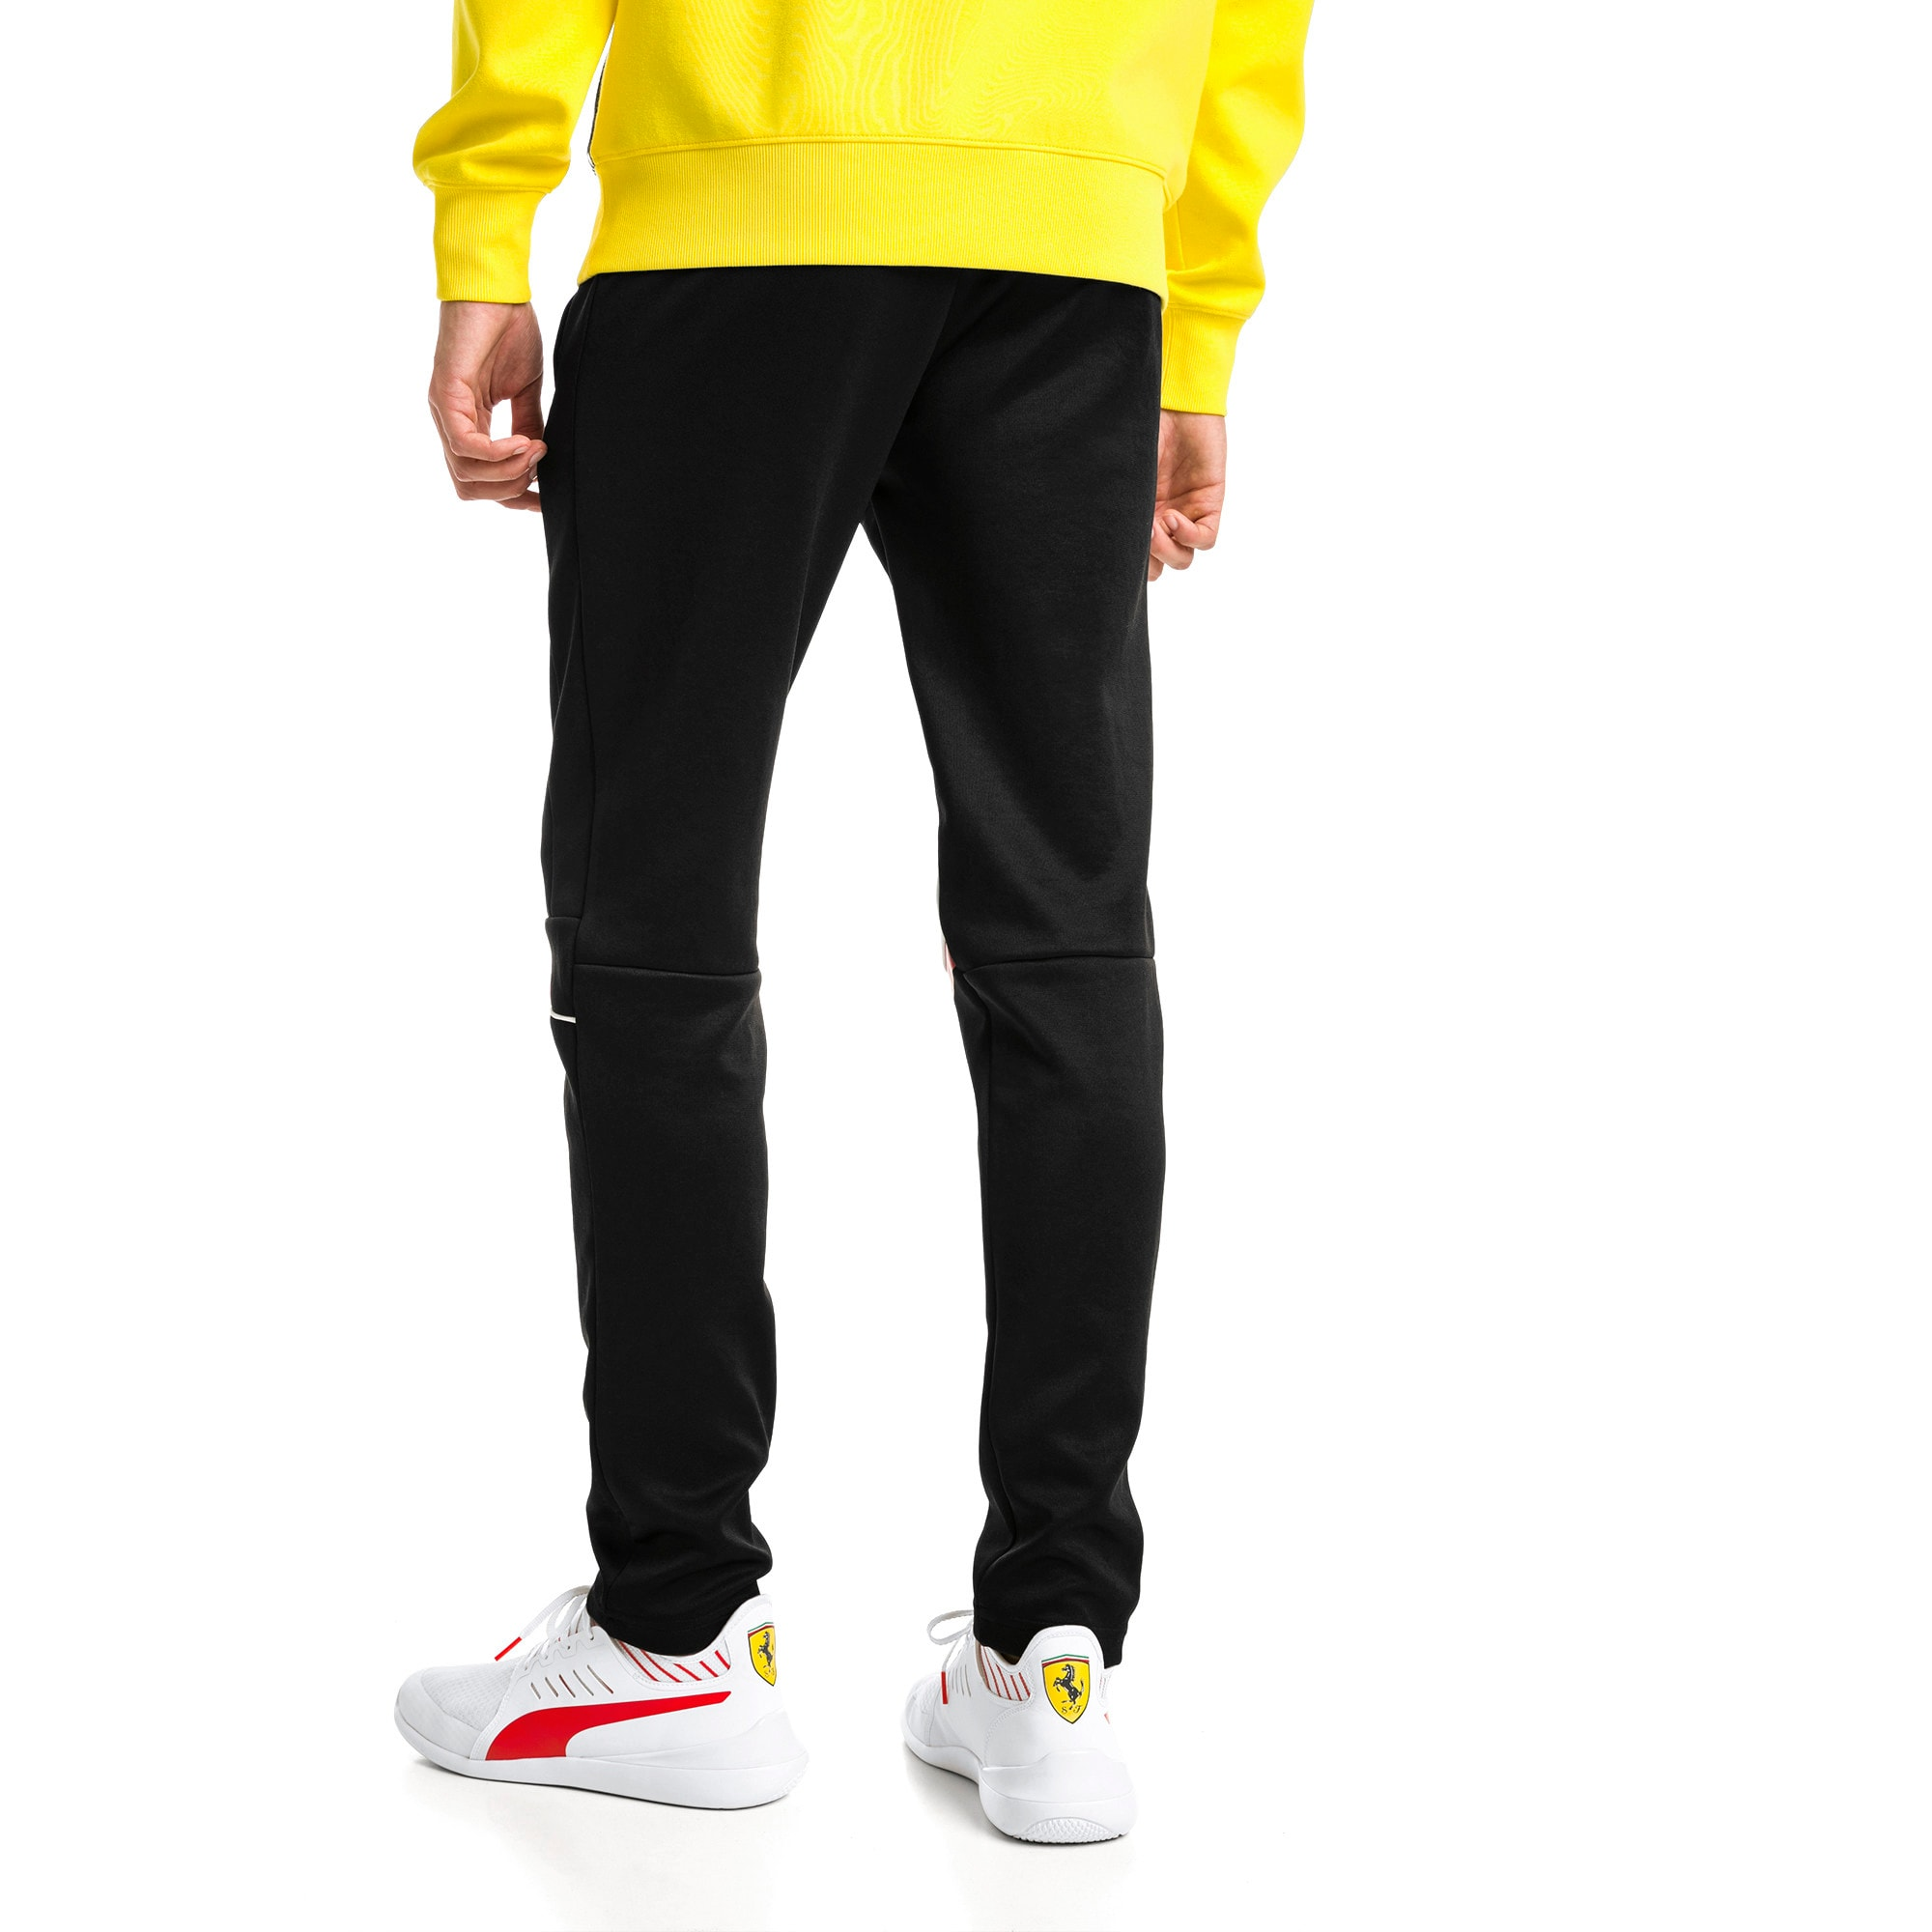 Thumbnail 2 van Ferrari T7 sweatpants voor heren, Puma Black, medium